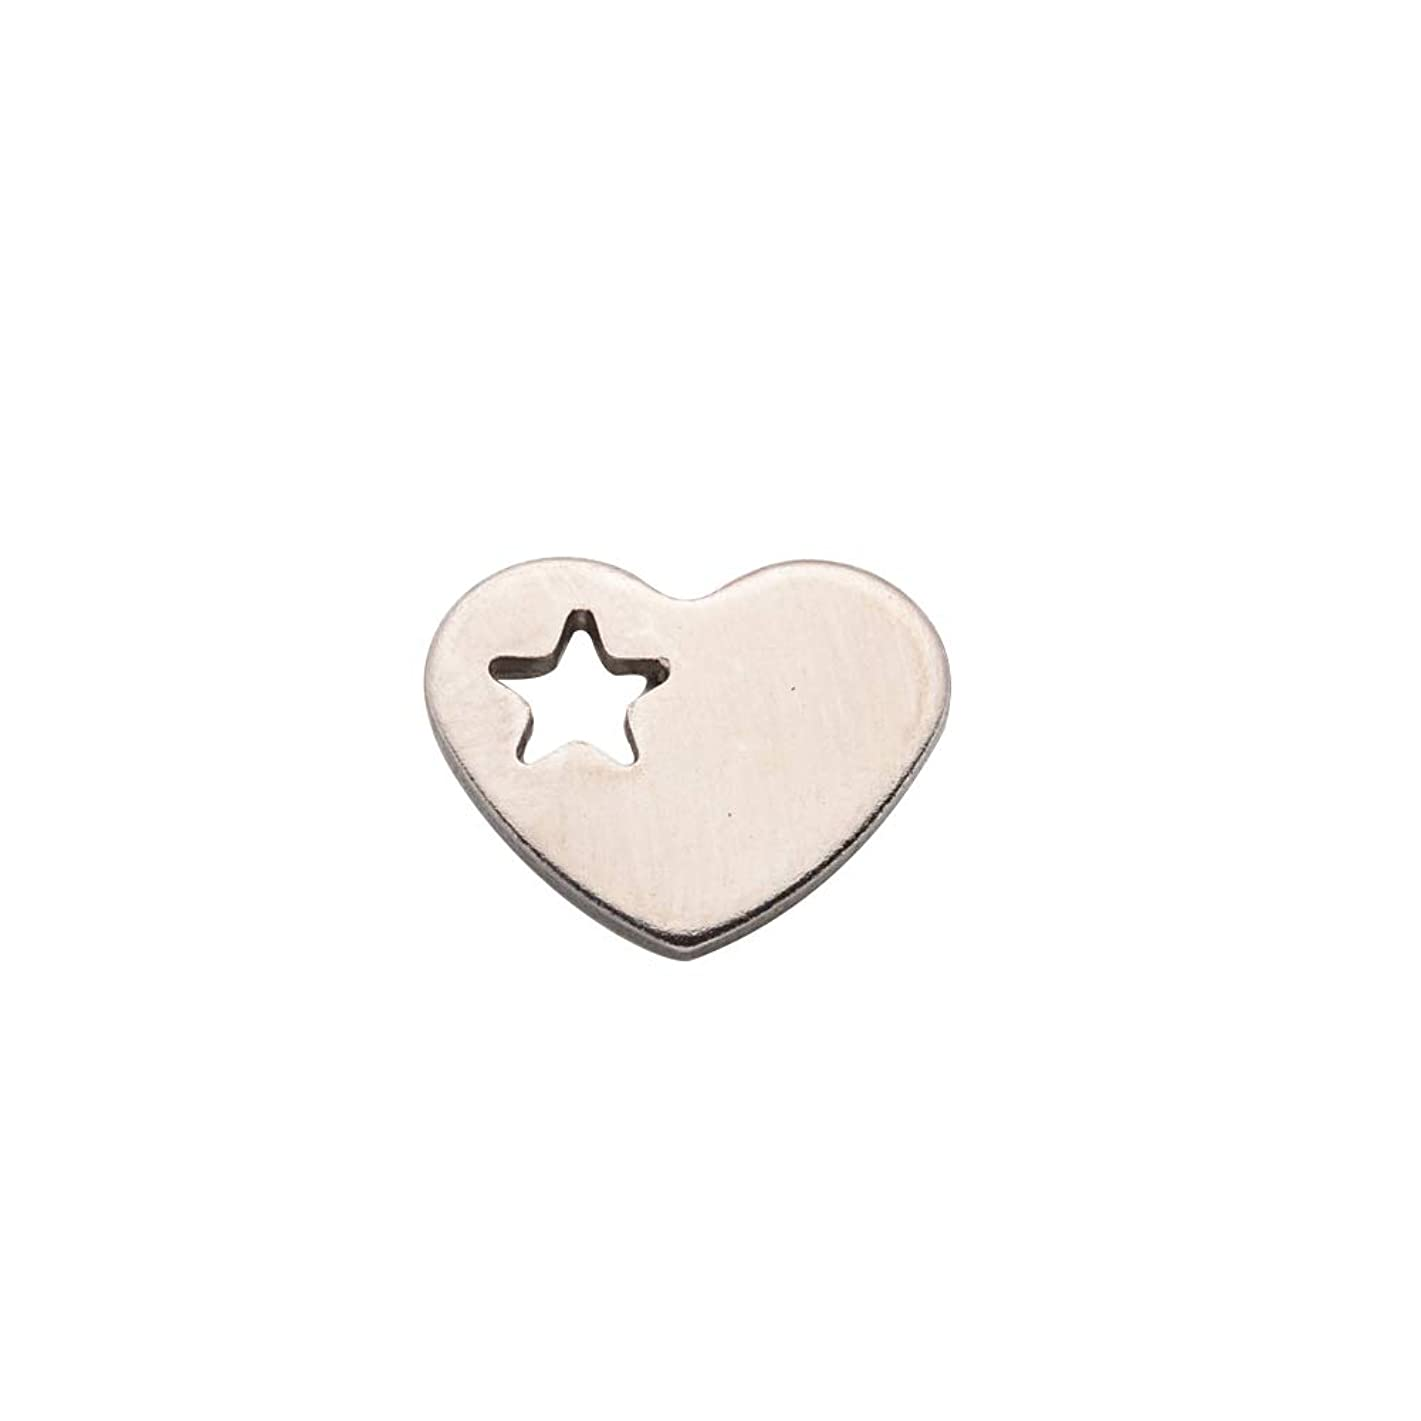 ARRICRAFT 200pcs Stainless Steel Flat Heart Charms Silver Stamping Tag Pendant Blank for Bracelet Necklace Jewelry Making, 12.5x10x1mm